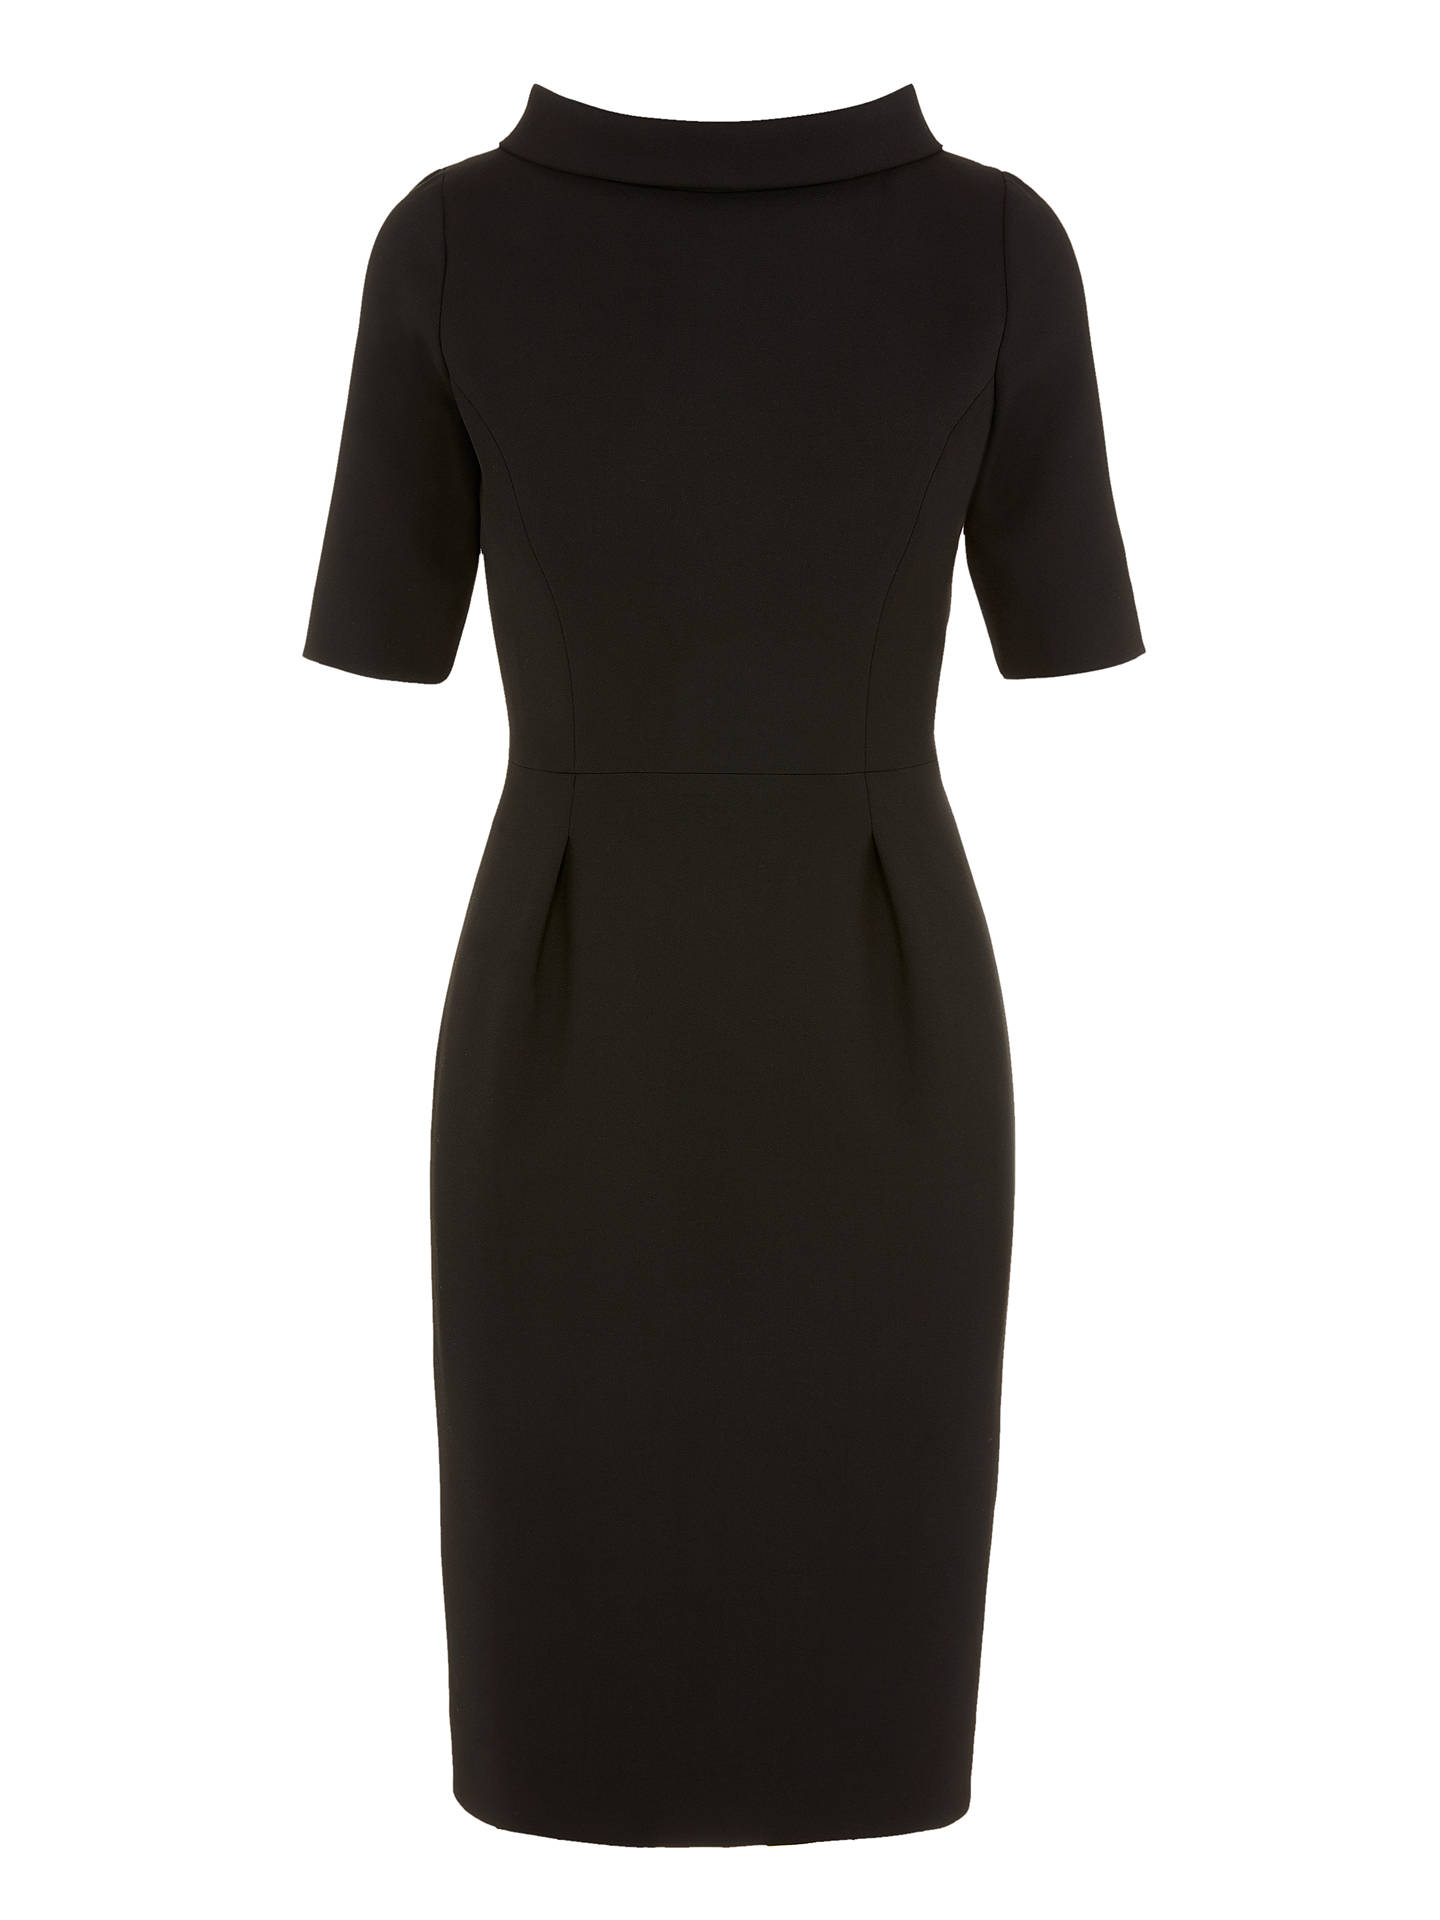 BuyBruce by Bruce Oldfield Picture Collar Dress, Black, 8 Online at johnlewis.com